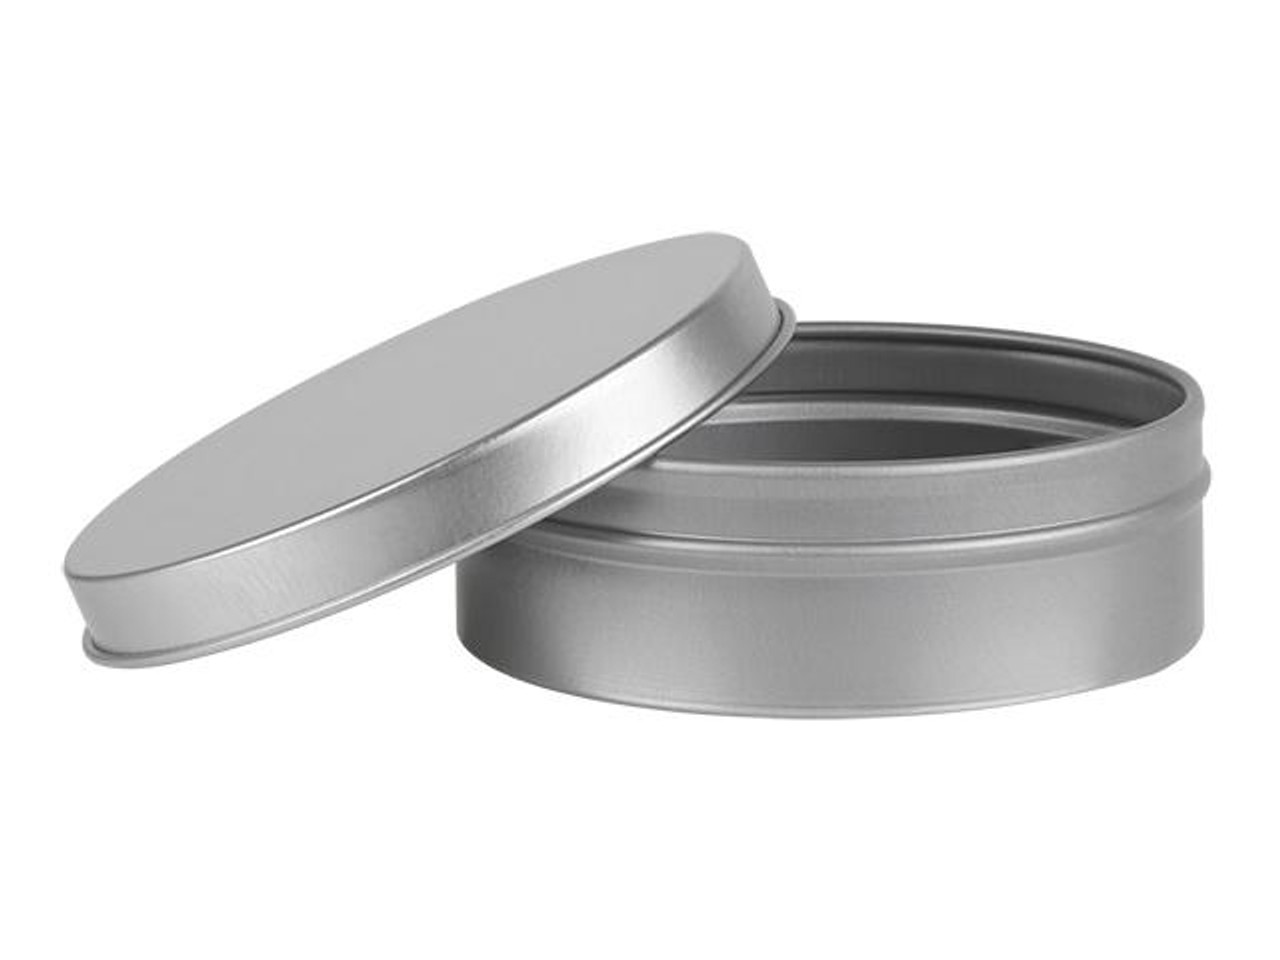 Nakpunar 4 oz Flat Round Tin Container with Solid Slip Cover